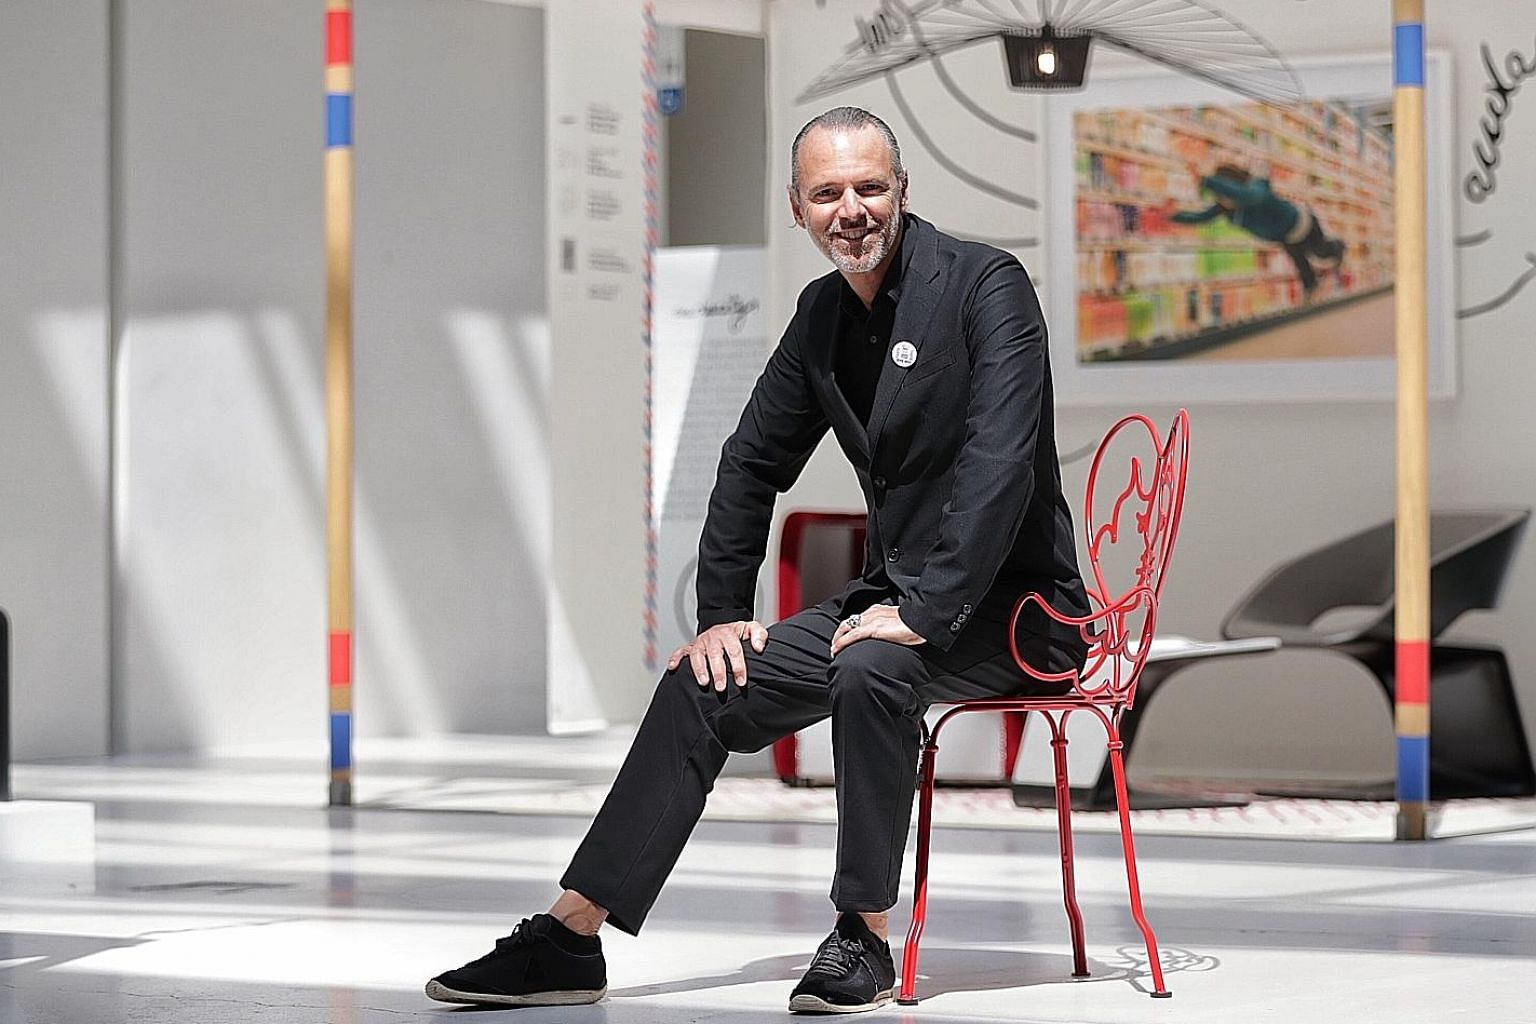 Mr Jean-Paul Bath (above) is chief executive of le French Design by VIA, which created the exhibition. The show highlights French design, including the Break stool by Singaporean industrial designer Nathan Yong, which was picked up by French label Ligne R